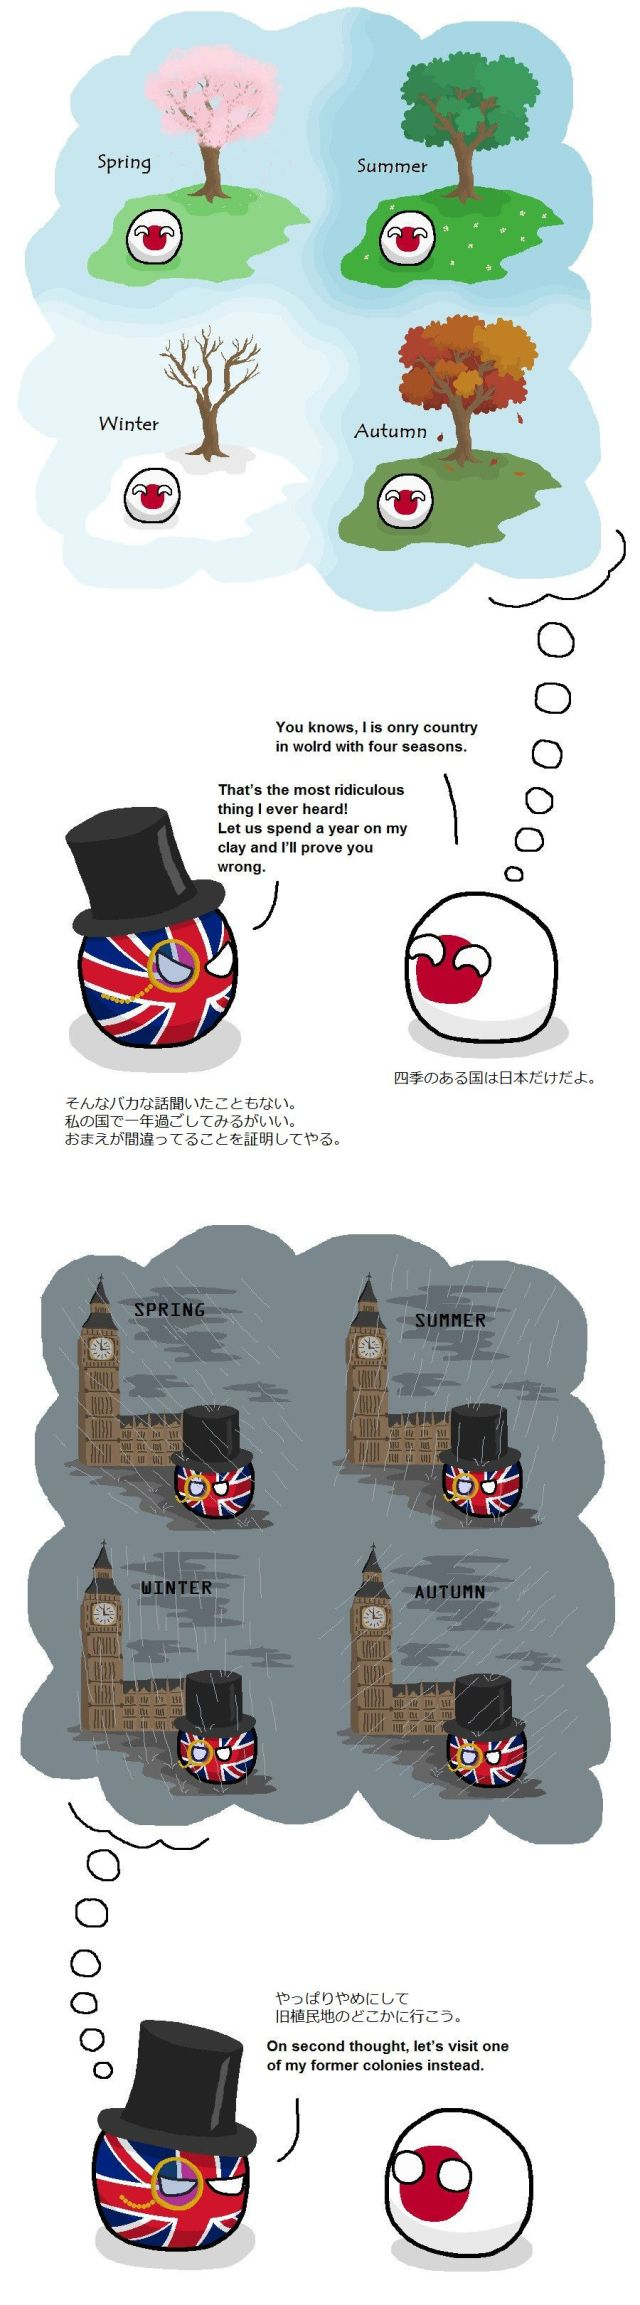 Polandball-UK11